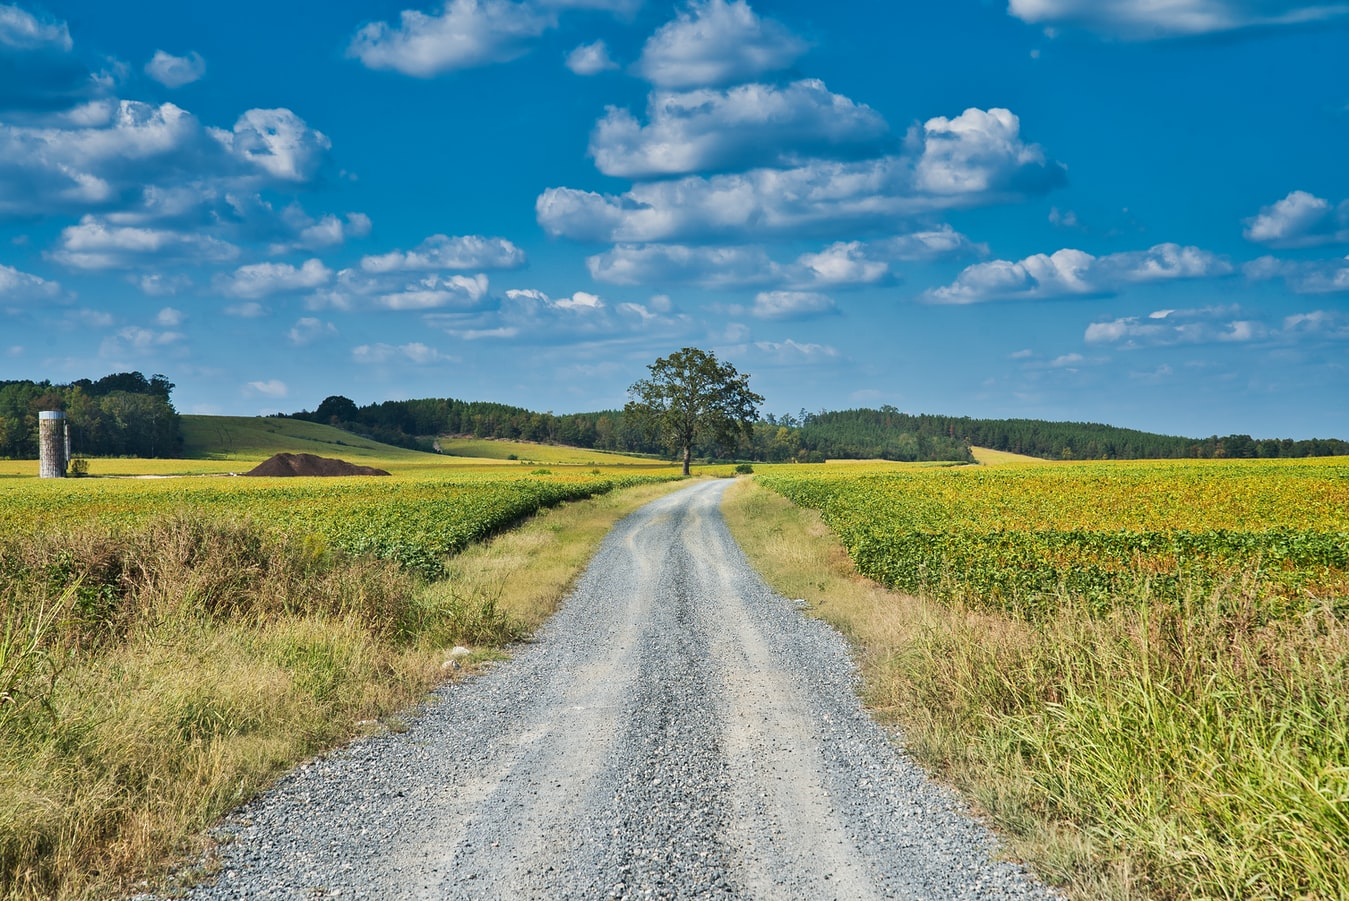 A country scene of a gravel road cutting through a soybean field with a lone oak tree just beside it on a sunny day.